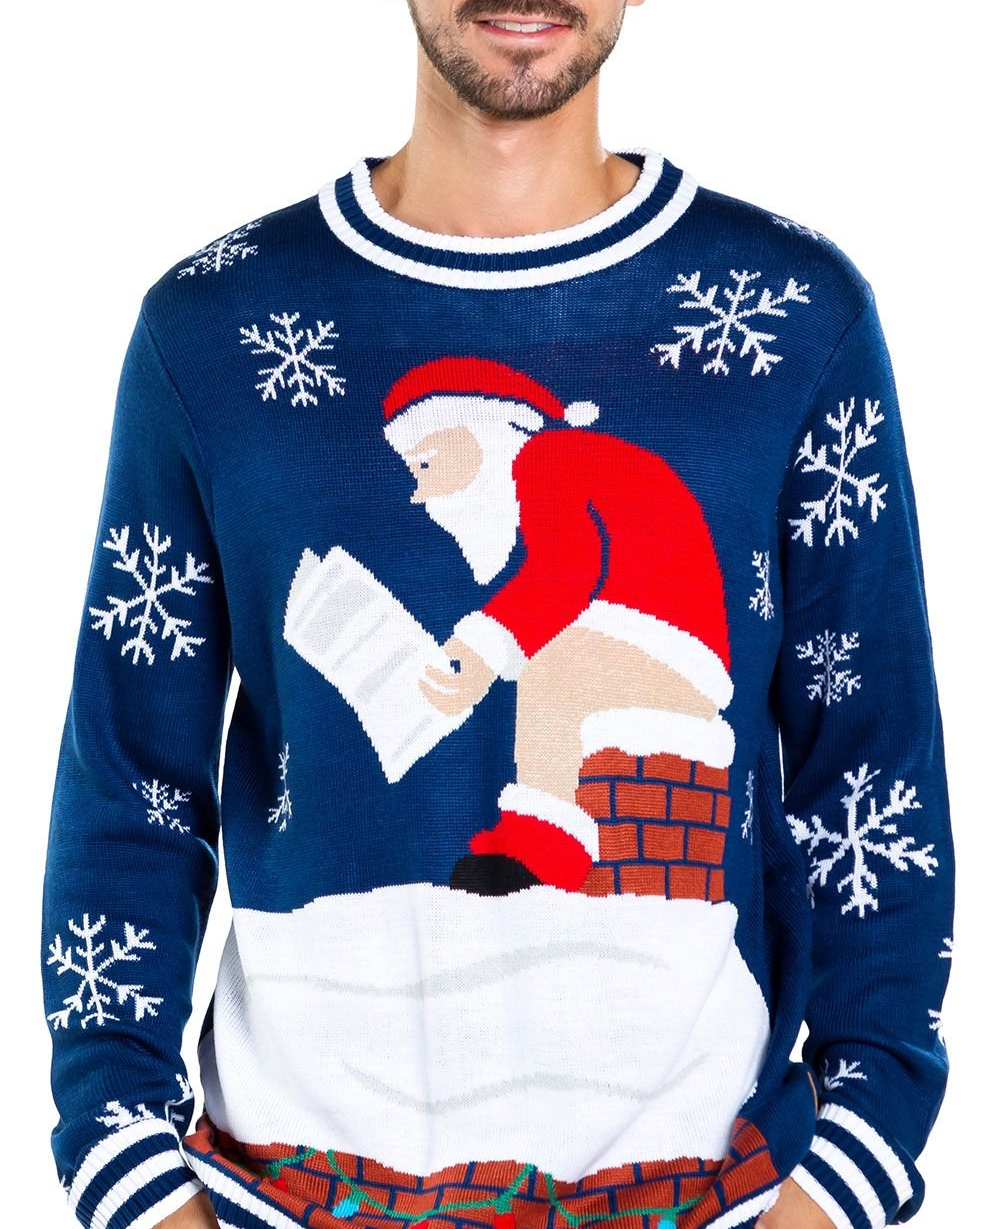 Mens-santa-log-on-fire-ugly-christmas-sweater01.Jpg